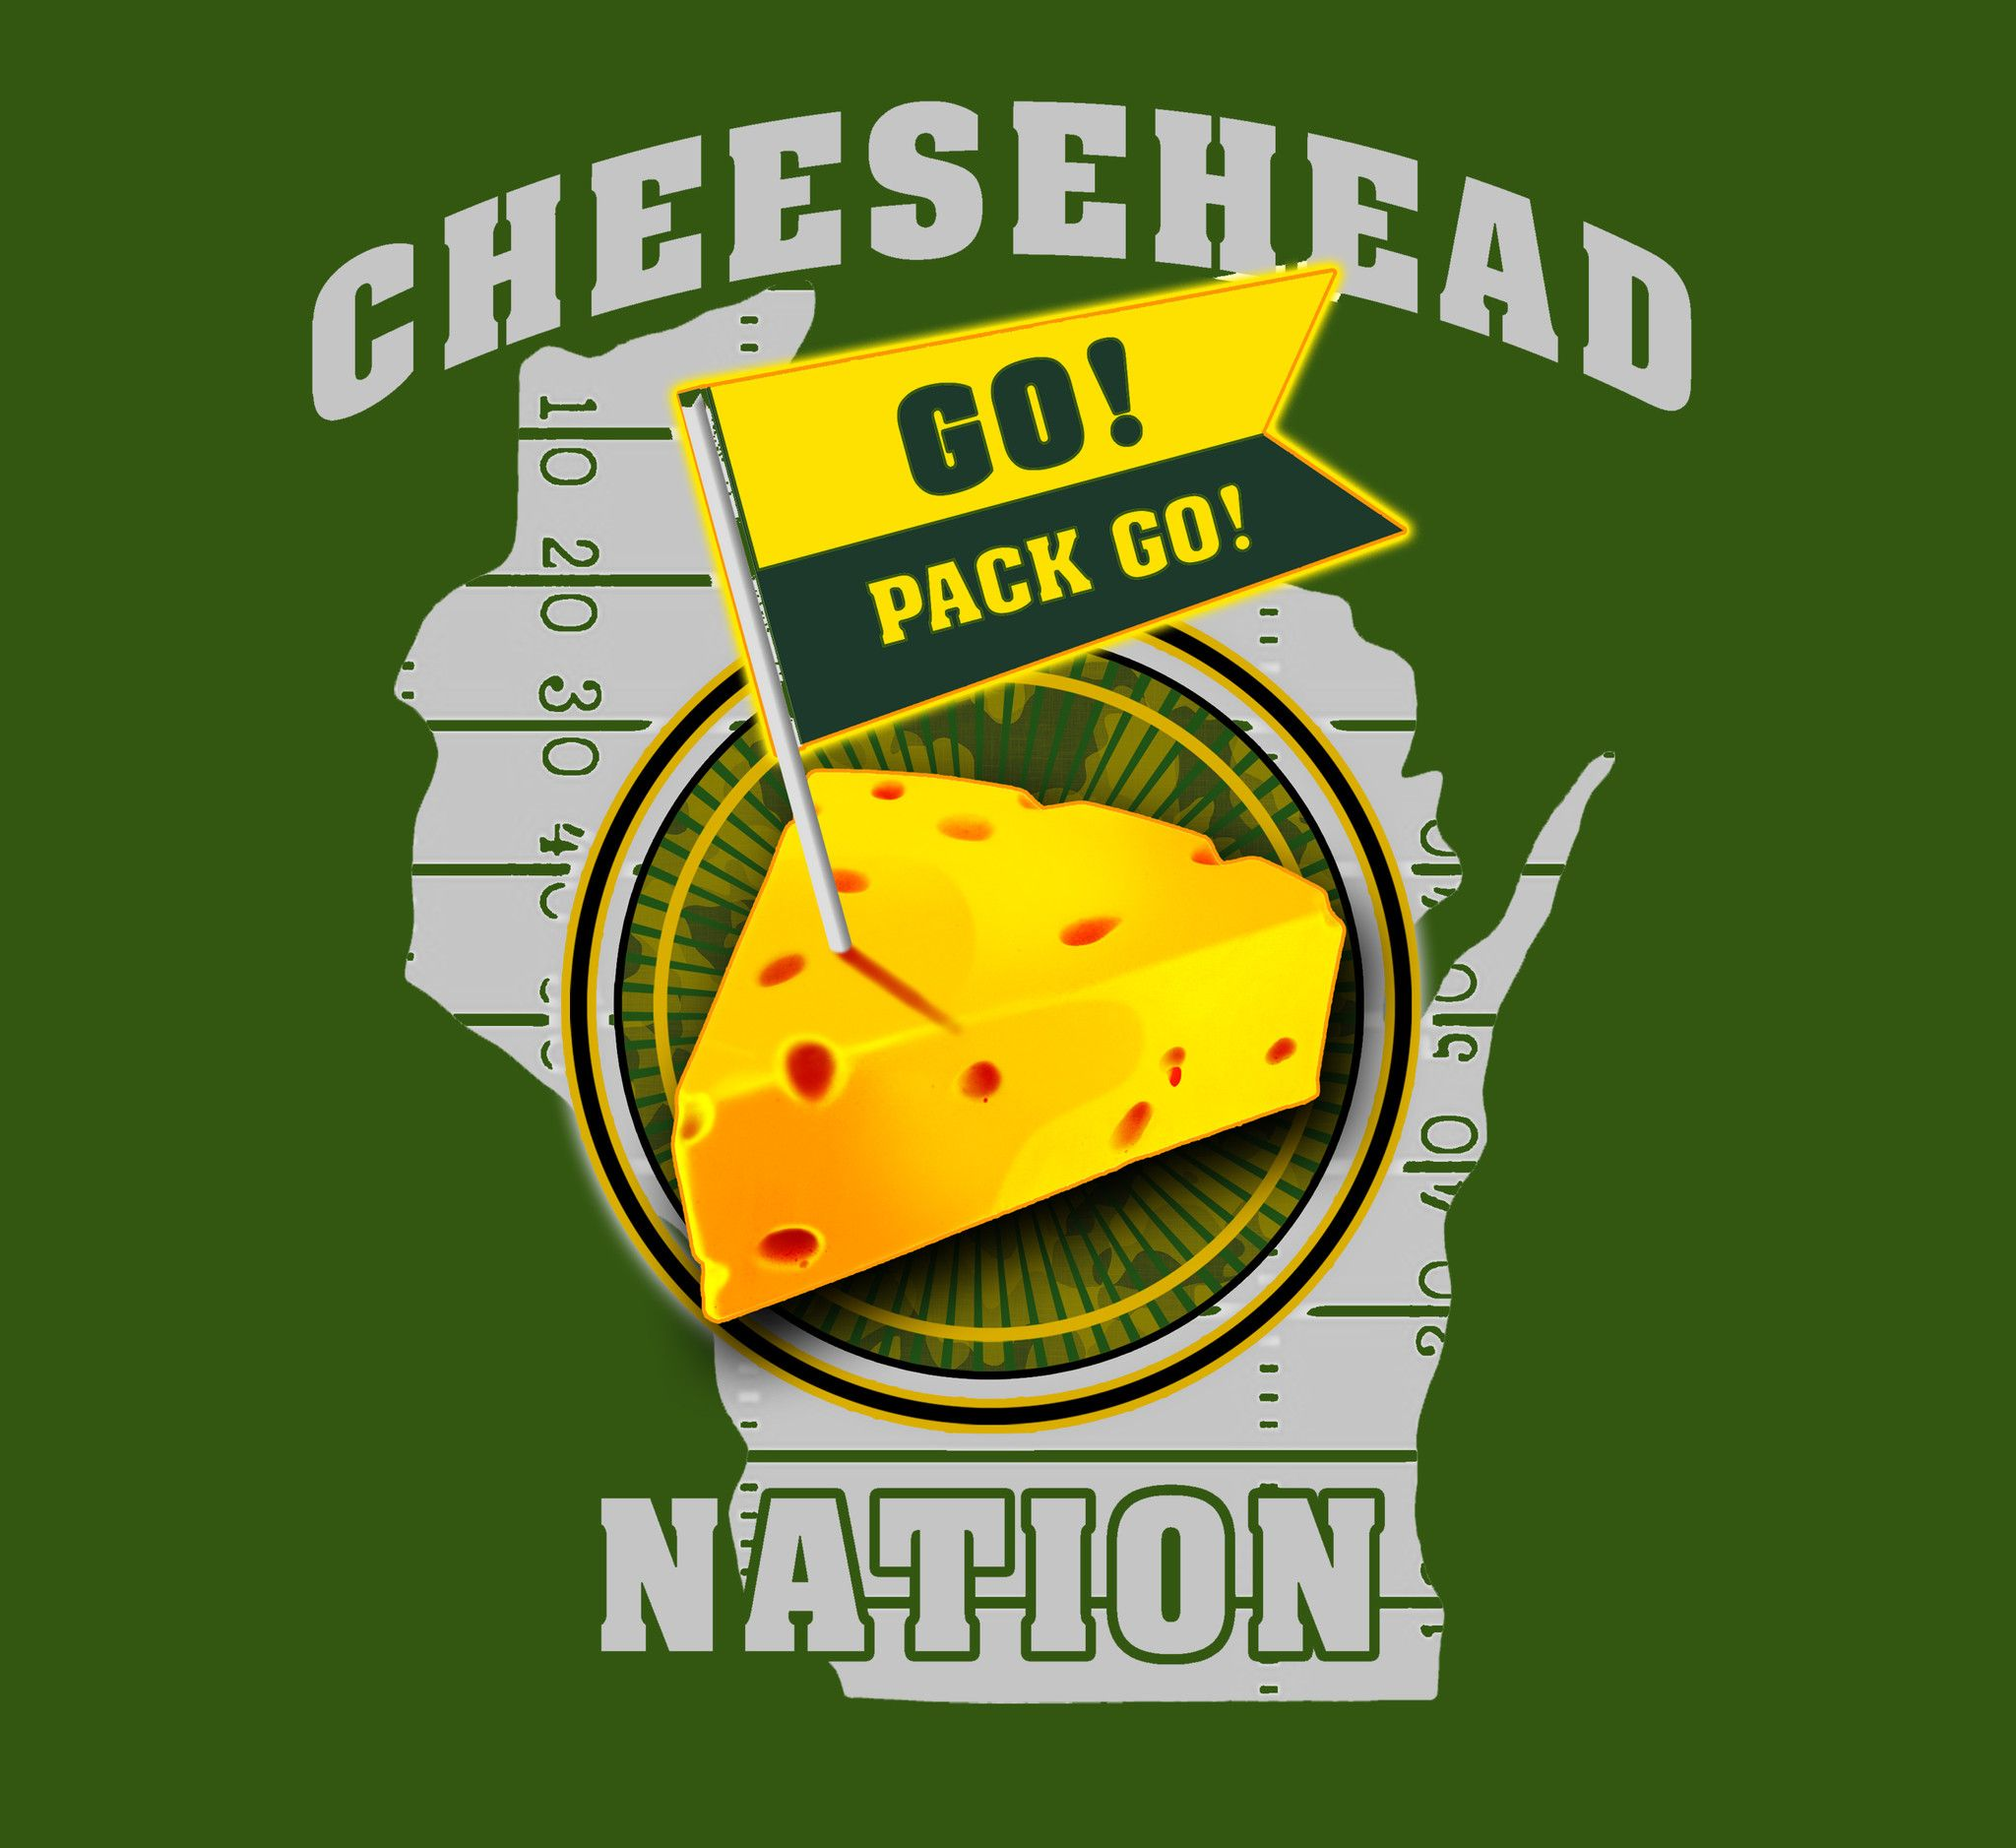 Cheesehead Nation Cheesehead Rodgers Packers Packers Fan